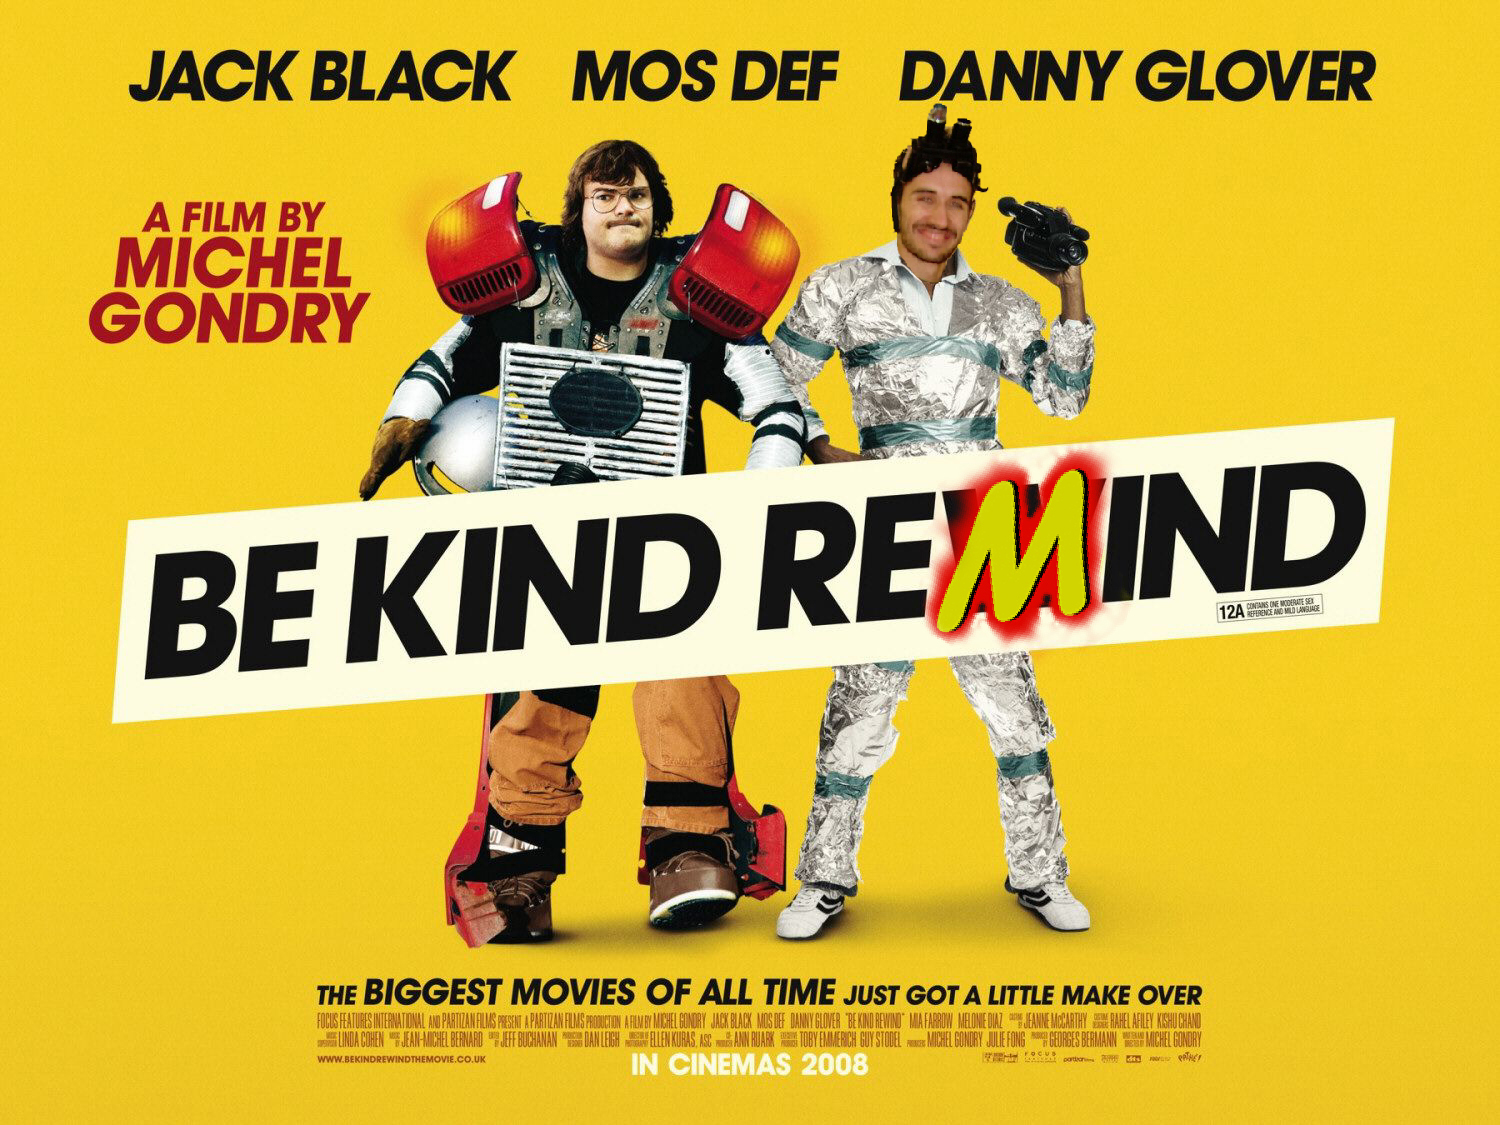 be_kind_remind